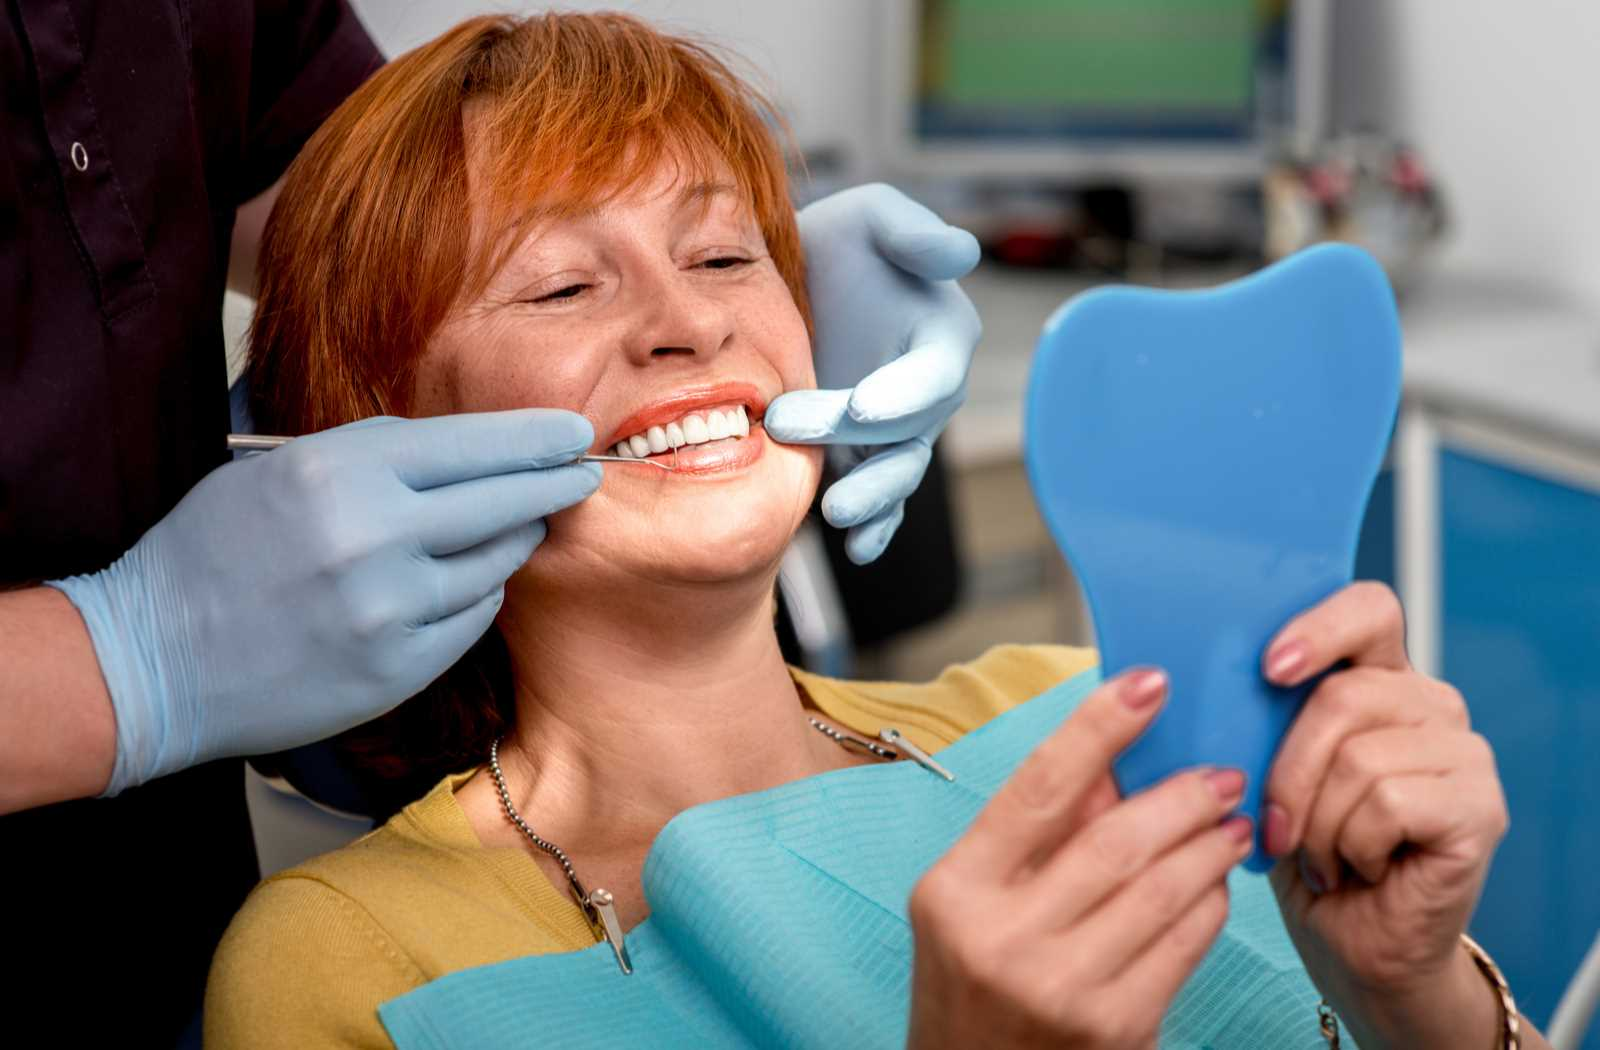 smiling woman in a chair looks at new dentures in a blue plastic mirror